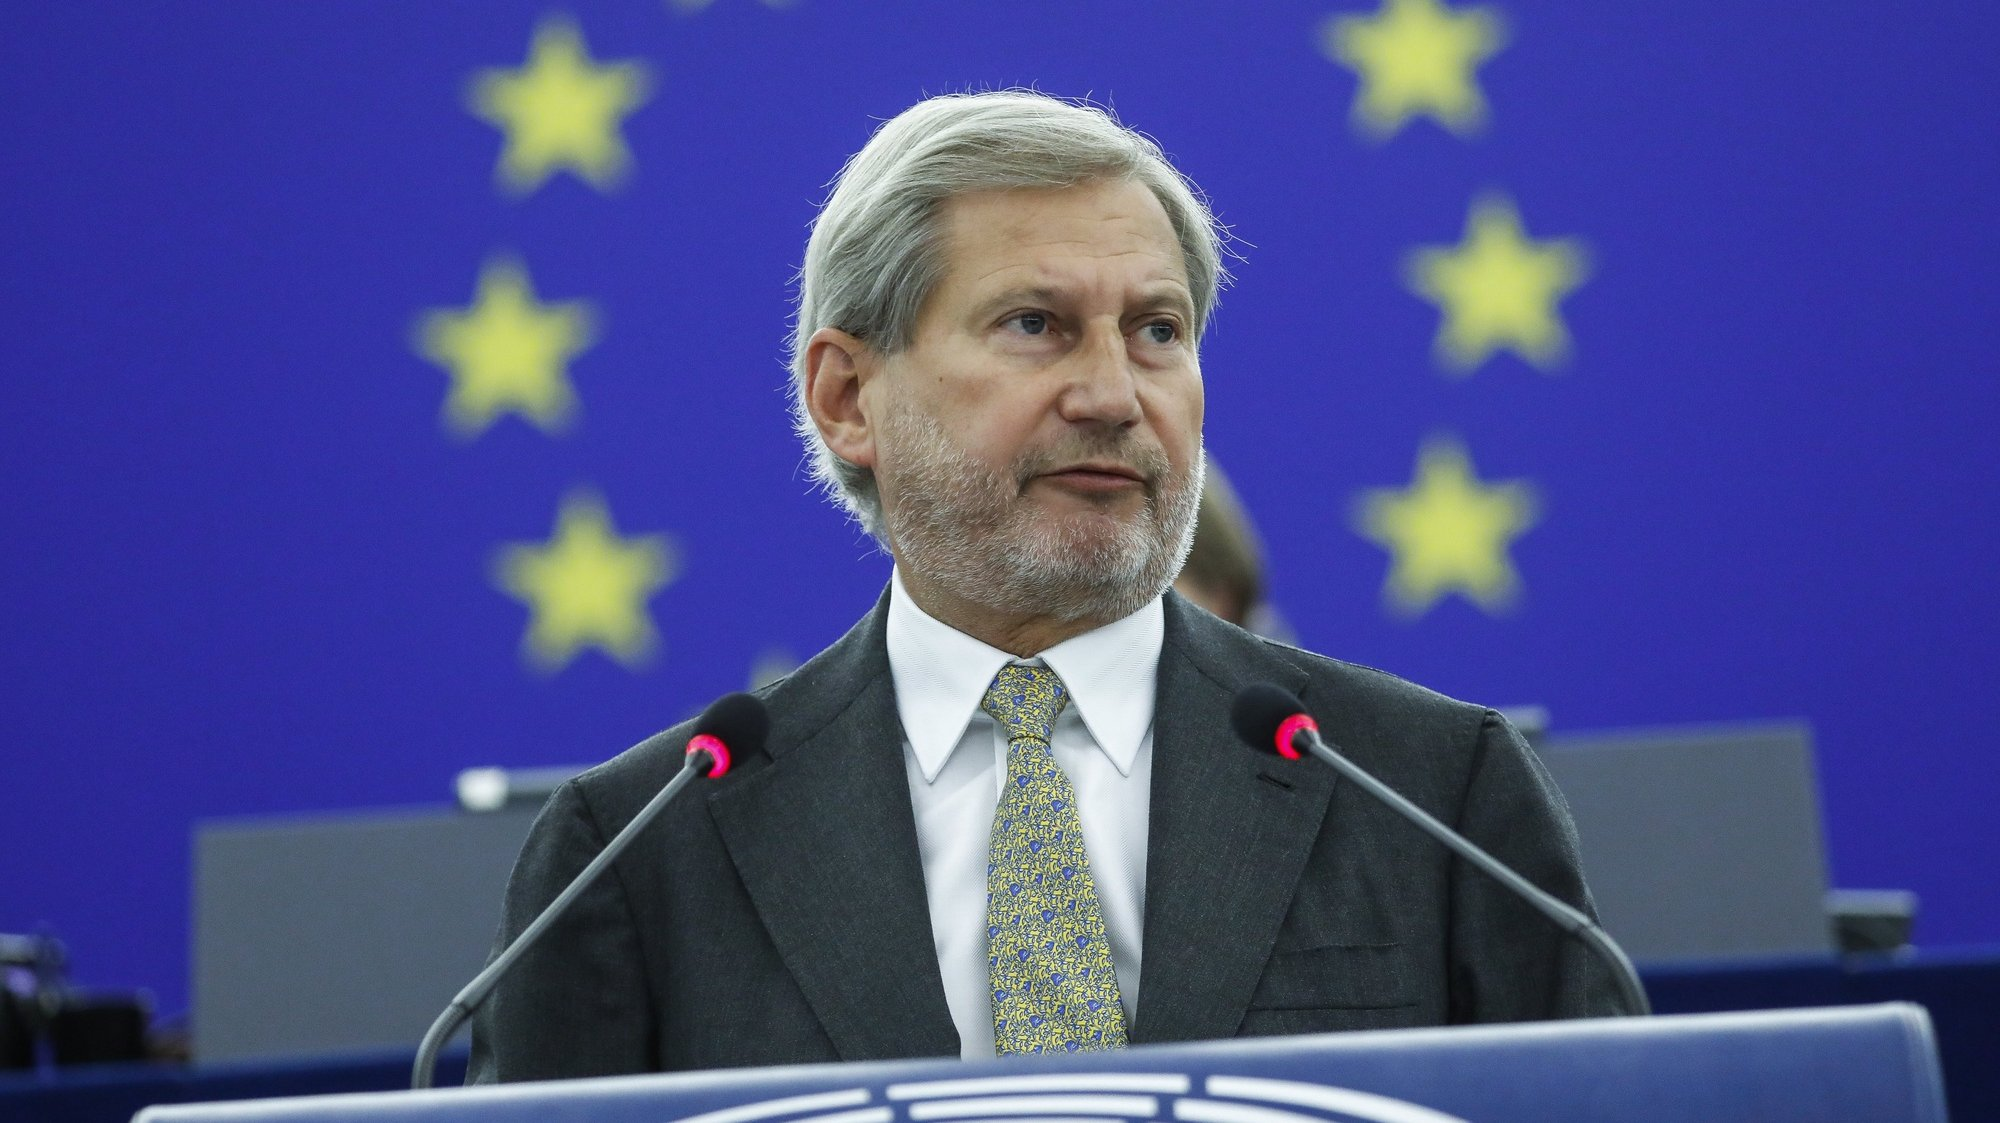 epa09257472 EU Budget Comissionner Johannes Hahn delivers a speech on Rule of Law situation in the European Union and the application of the conditionality regulation 2020/2092, during a plenary session at the European Parliament in Strasbourg, France, 09 June 2021.  EPA/JULIEN WARNAND